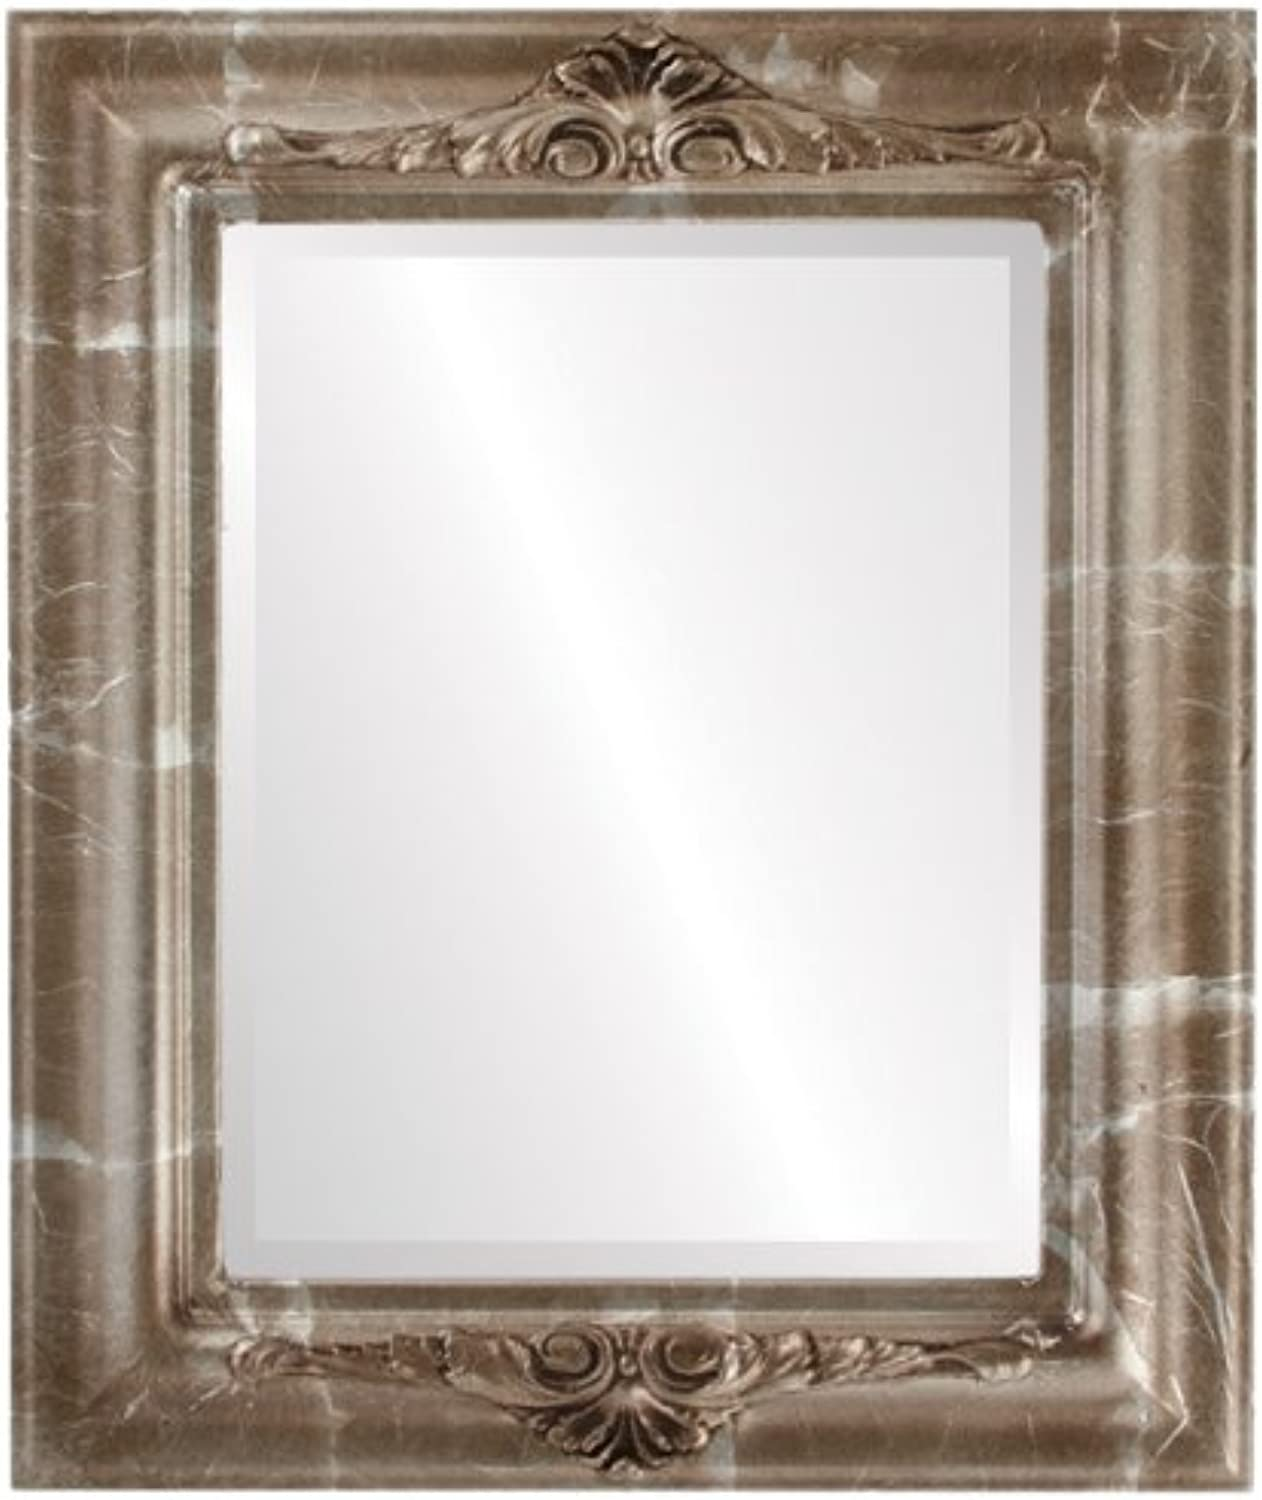 OvalAndRoundMirrors  Rectangle Beveled Mirror in a Winchester style Champagne Silver frame with 17x21 outside dimensions